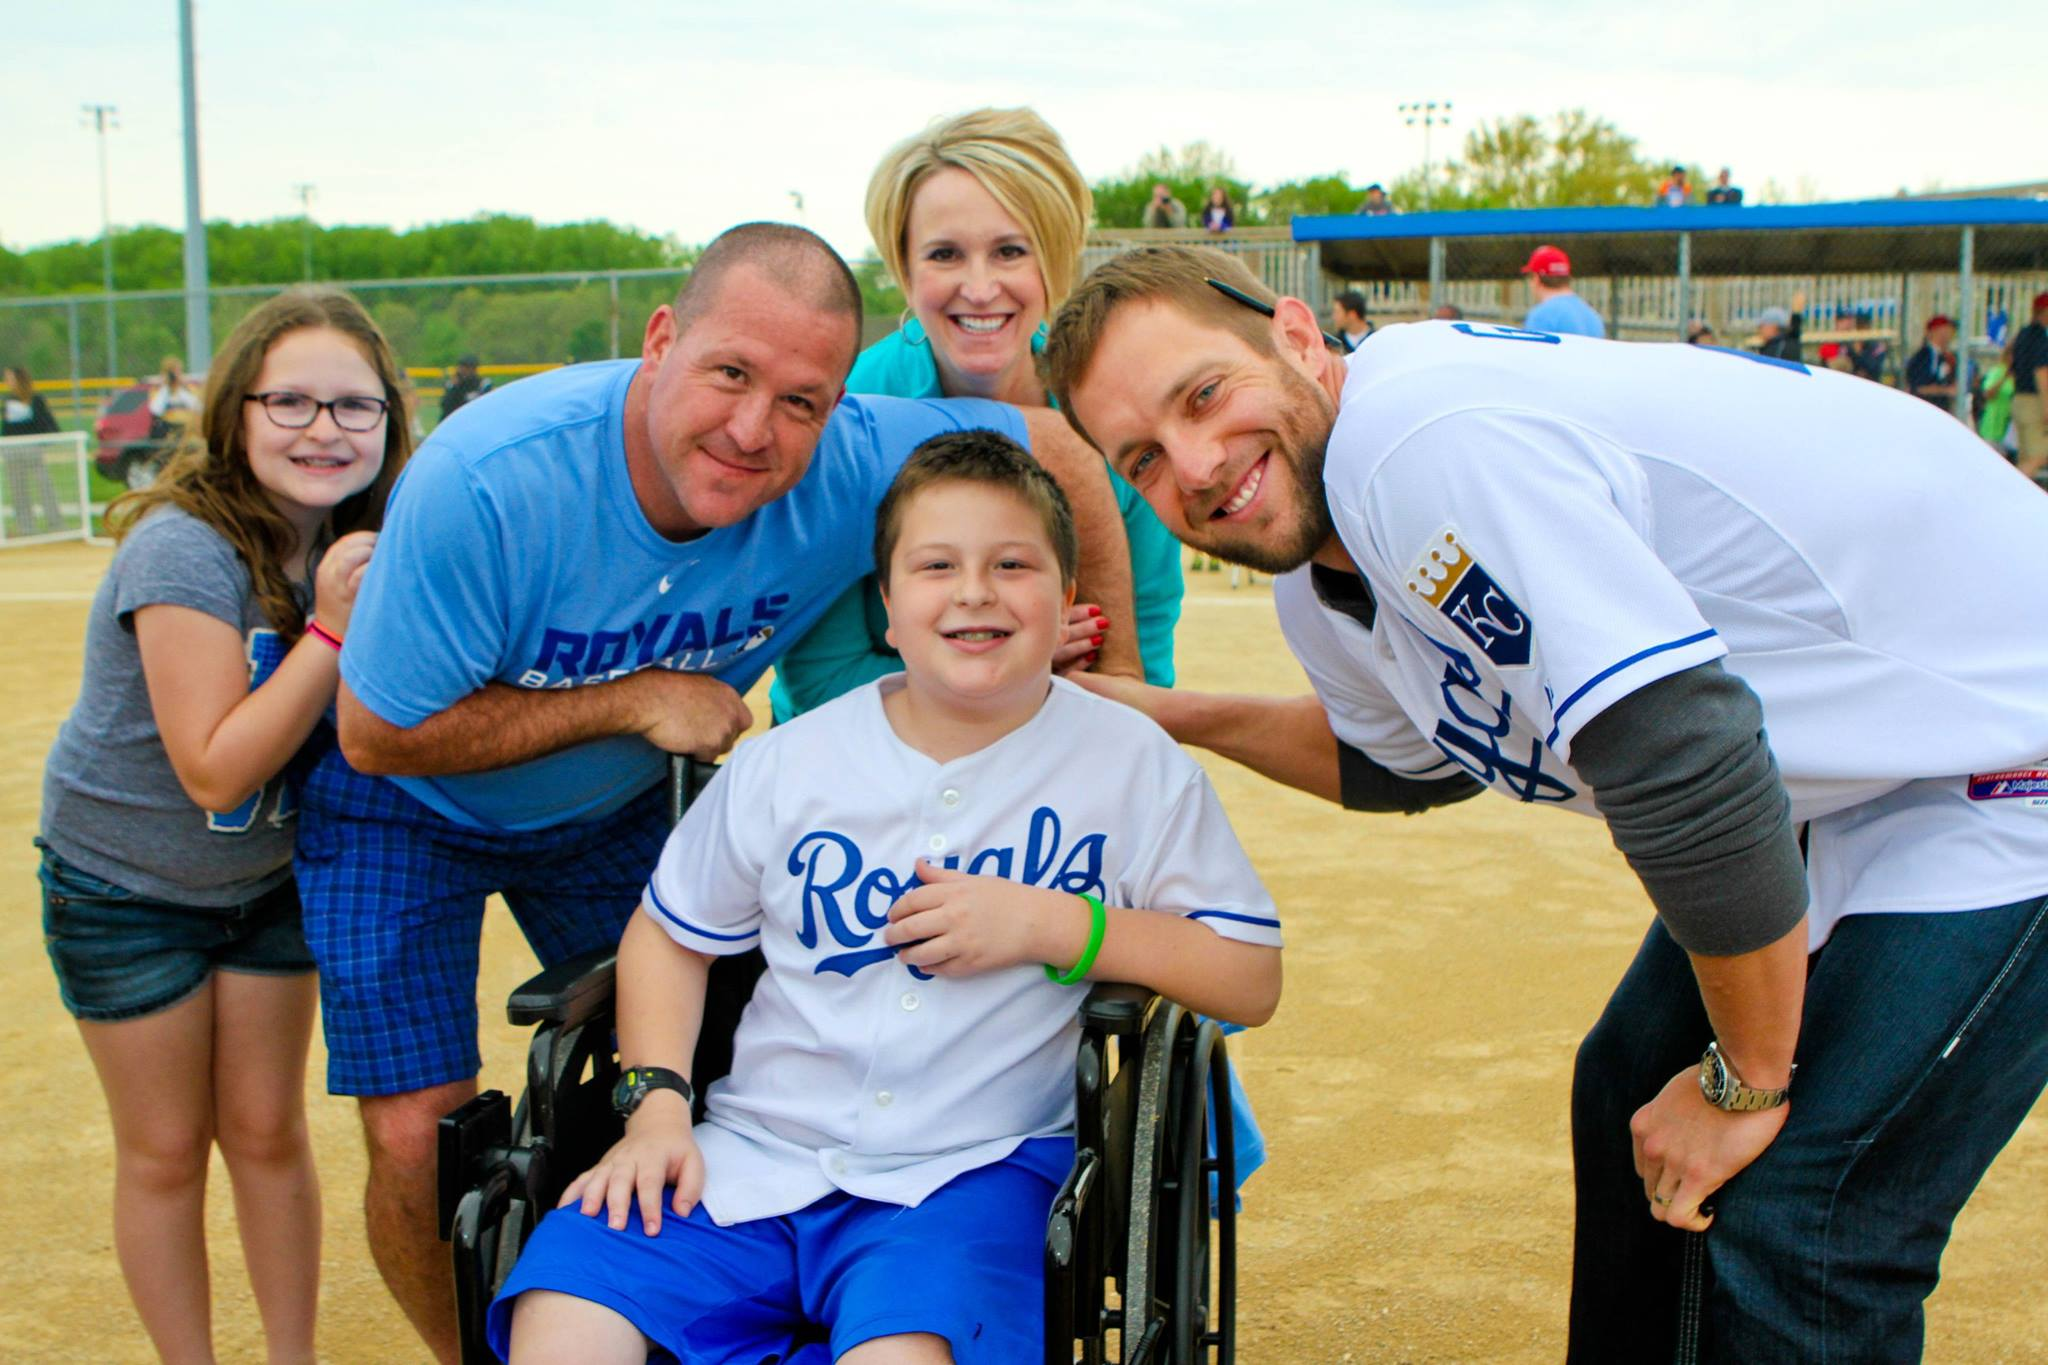 Alex Gordon with a childhood cancer hero